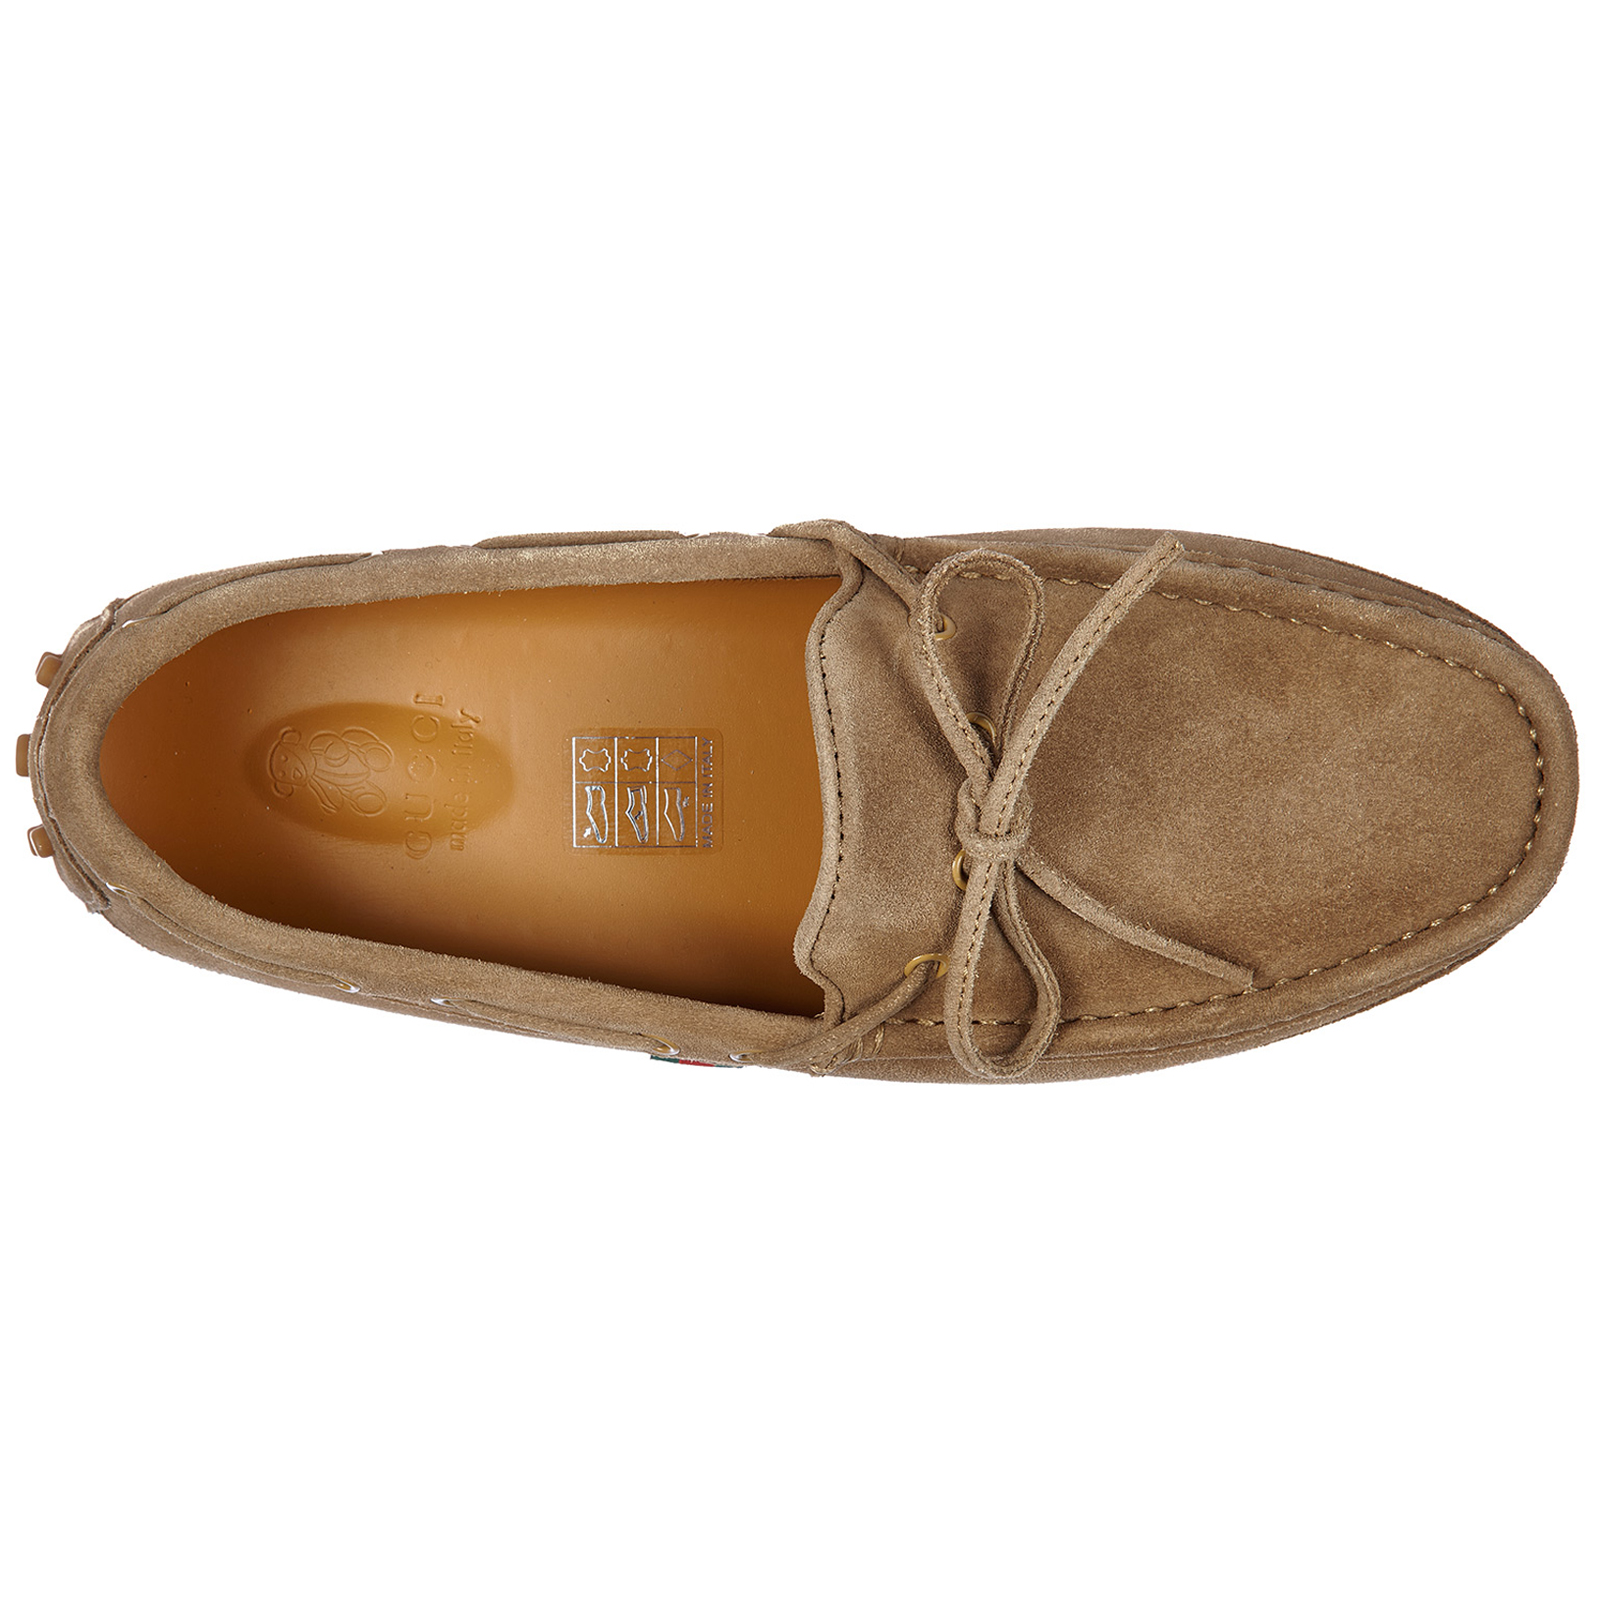 Boys shoes child loafers moccassins suede leather moca softy cloud